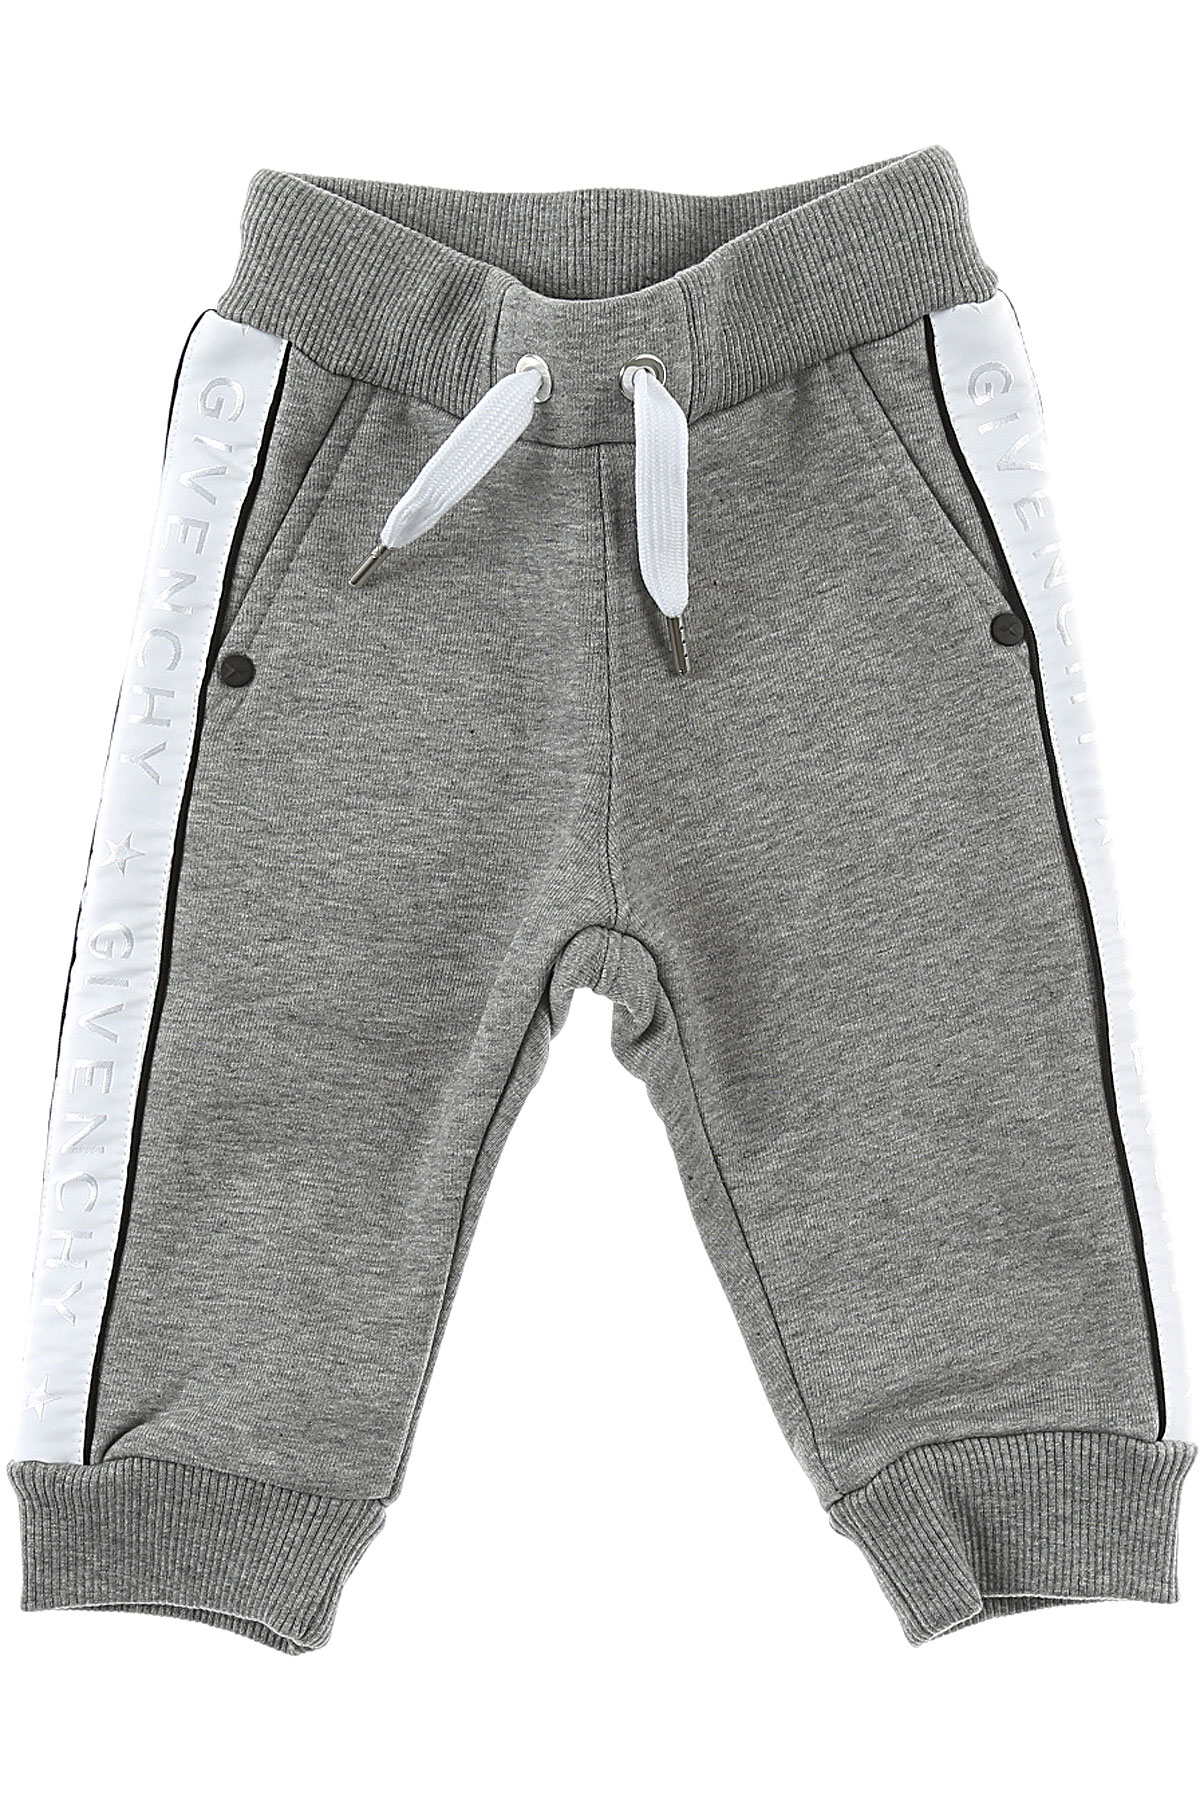 Image of Givenchy Baby Sweatpants for Boys, Grey, Cotton, 2017, 12M 18M 3Y 6M 9M